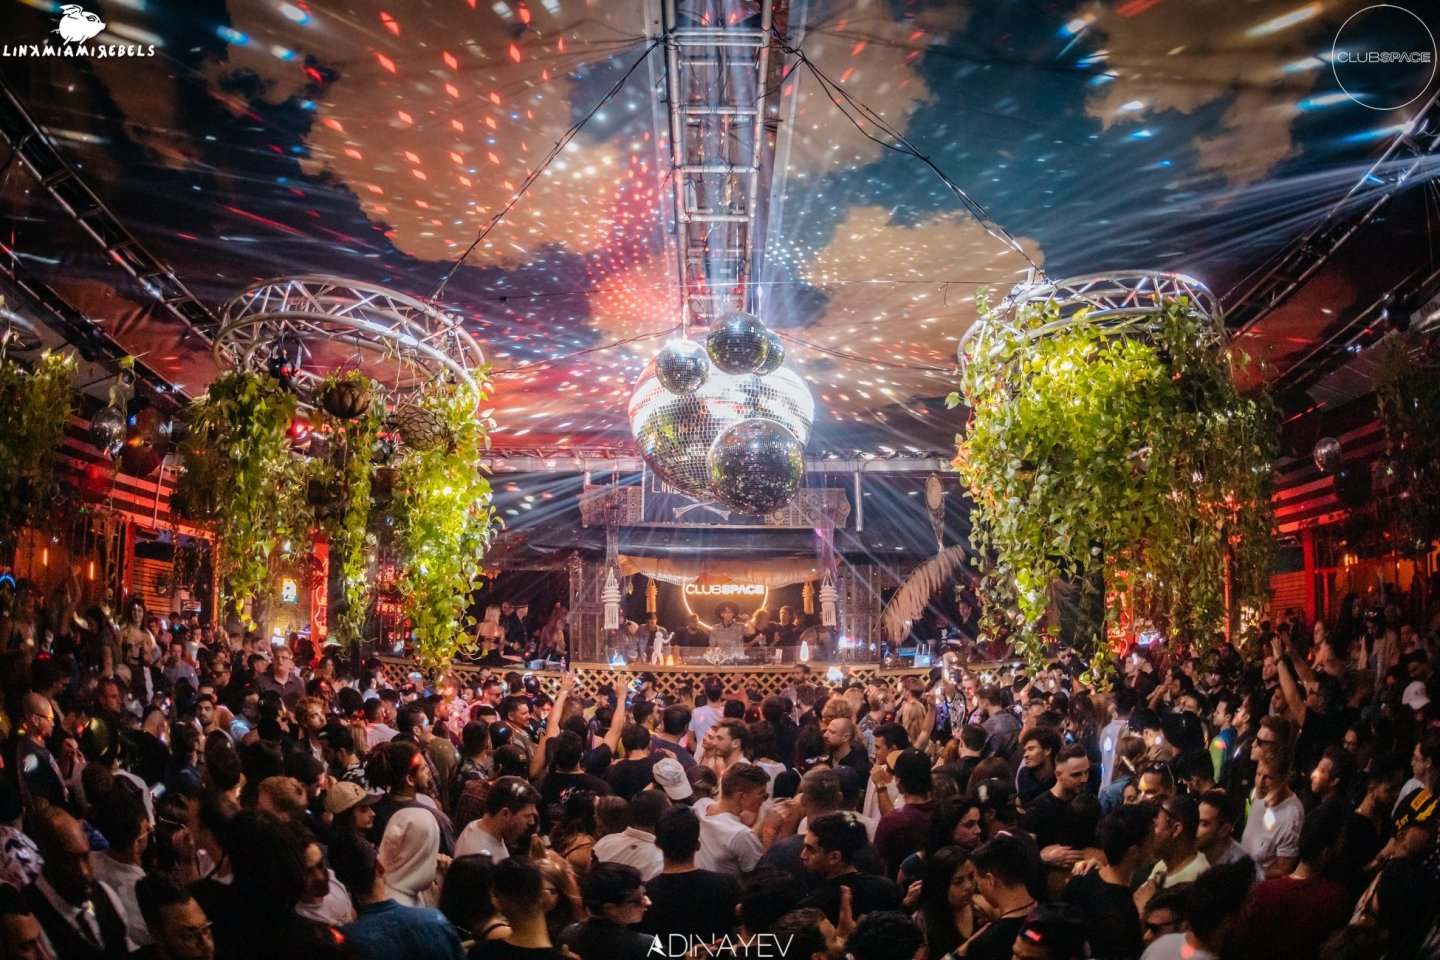 Miami Music Week Events 2020